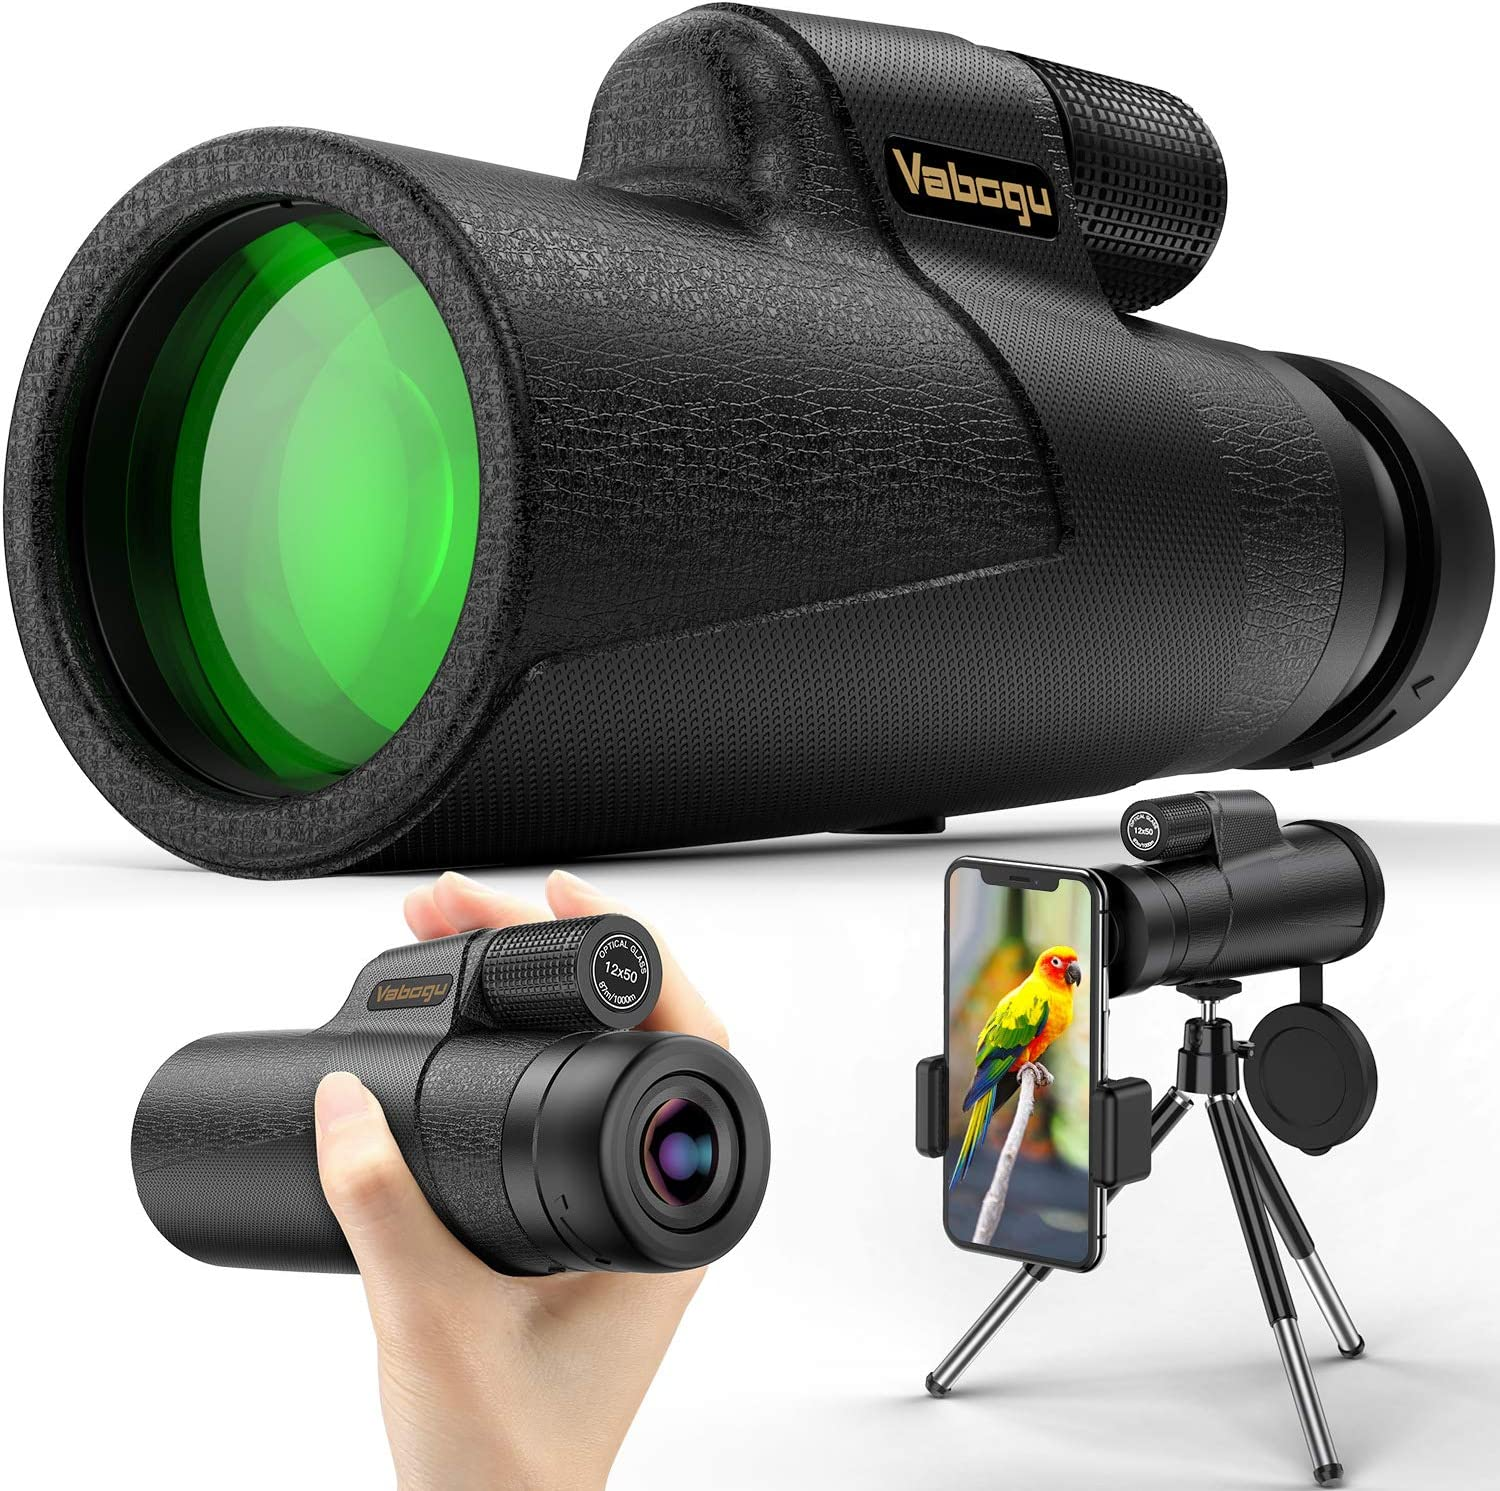 Monocular Telescope, 12x50 High Power HD Monocular for Bird Watching Adults with Smartphone Holder & Tripod BAK4 Prism for Wildlife Hunting Camping Travelling Wildlife - 2020 Newest (1250, Black) : Camera & Photo